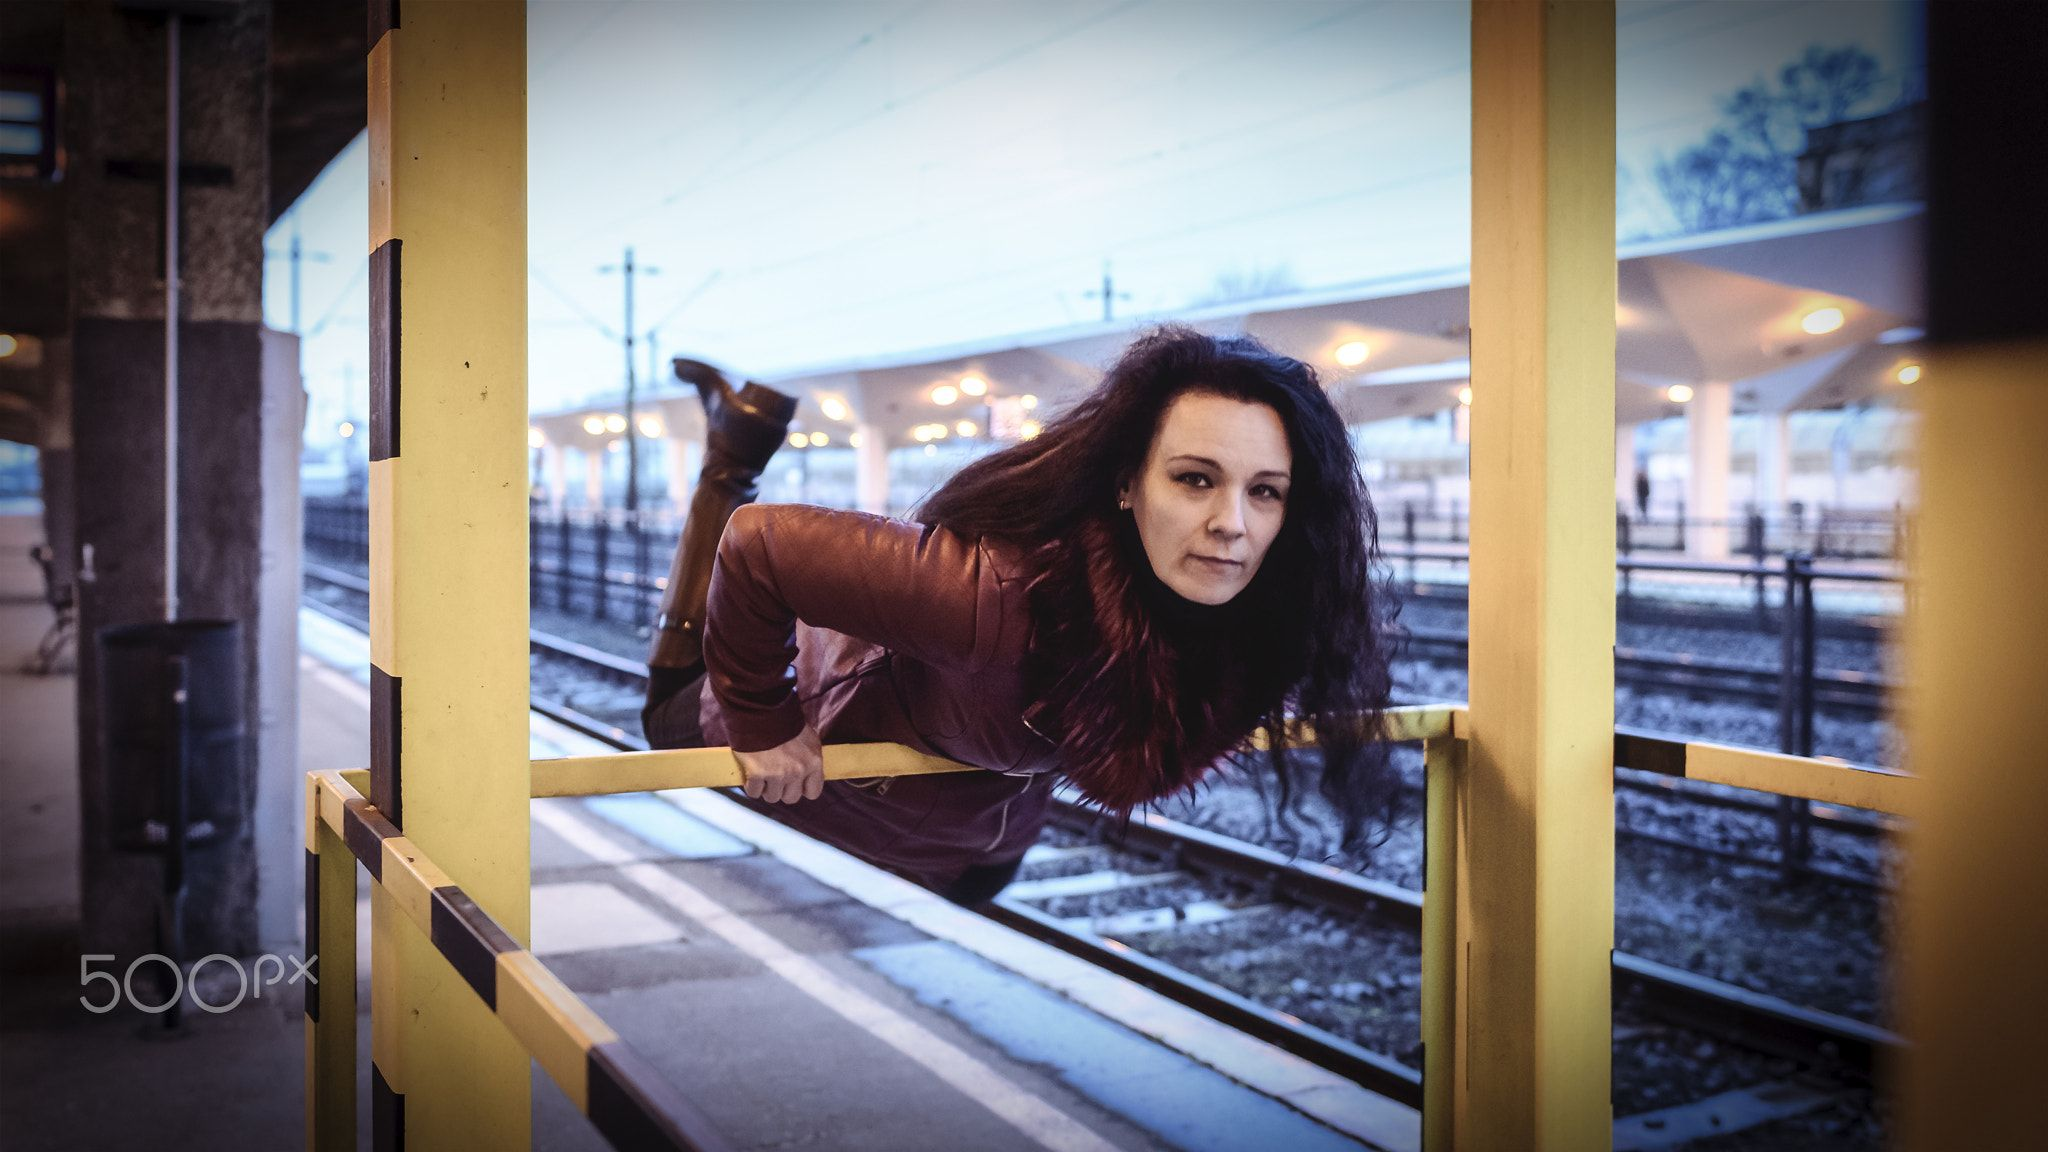 Woman modell - A female model runs after the train